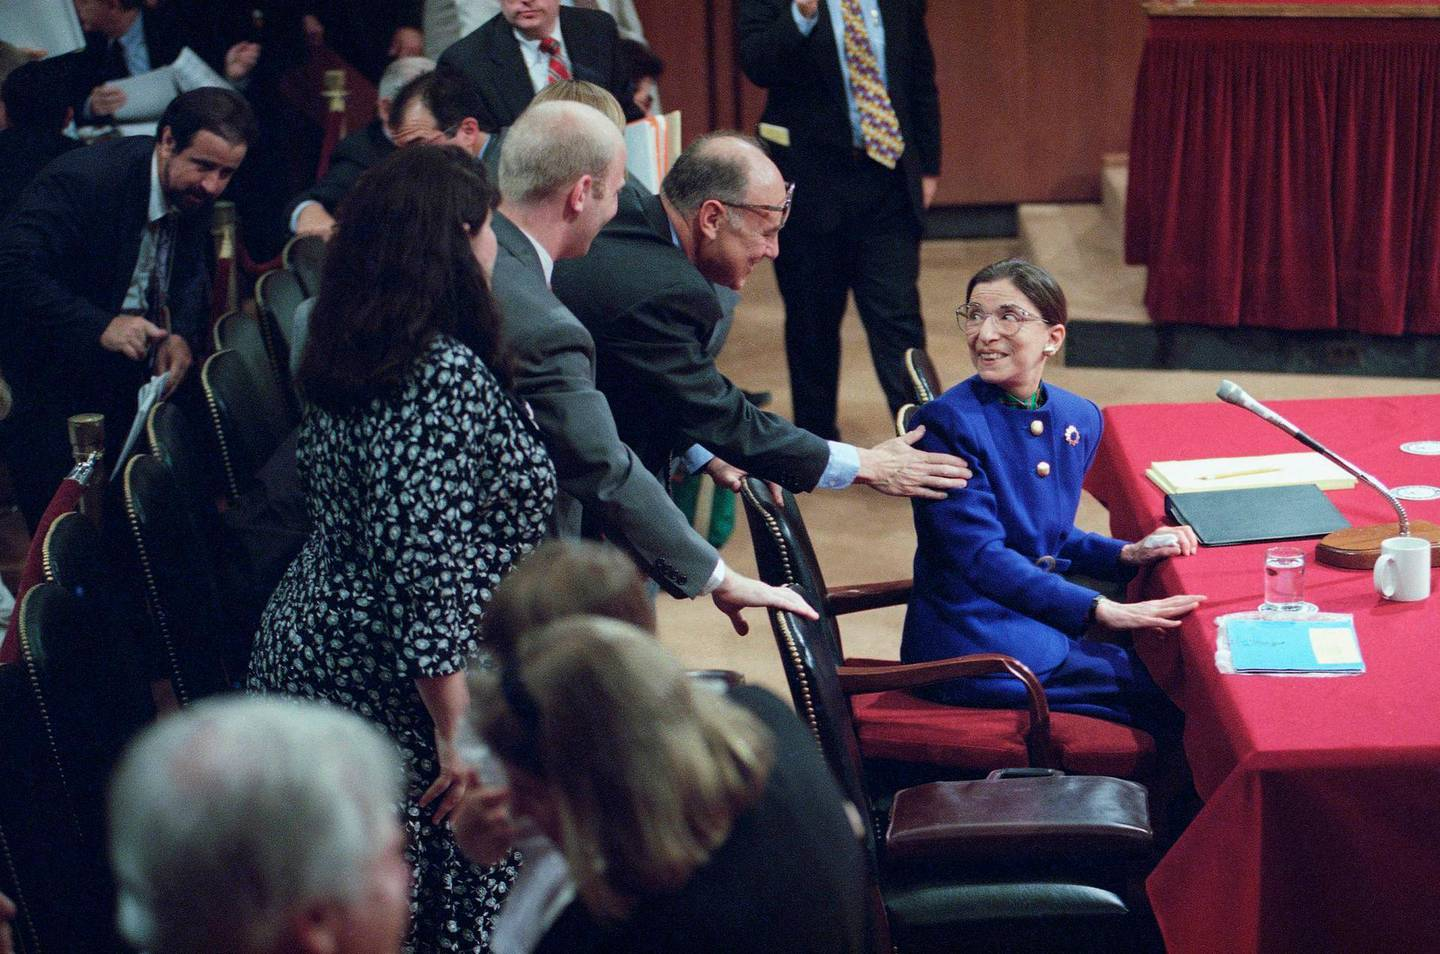 Supreme Court nominee Judge Ruth Bader Ginsburg is greeted by her husband Martin as she introduced her family during her confirmation hearing before the Senate Judiciary Committee on Capitol Hill on Tuesday, July 20, 1993 in Washington. Ginsburg's son James and wife Lisa Brauston are at left. (AP Photo/John Duricka)